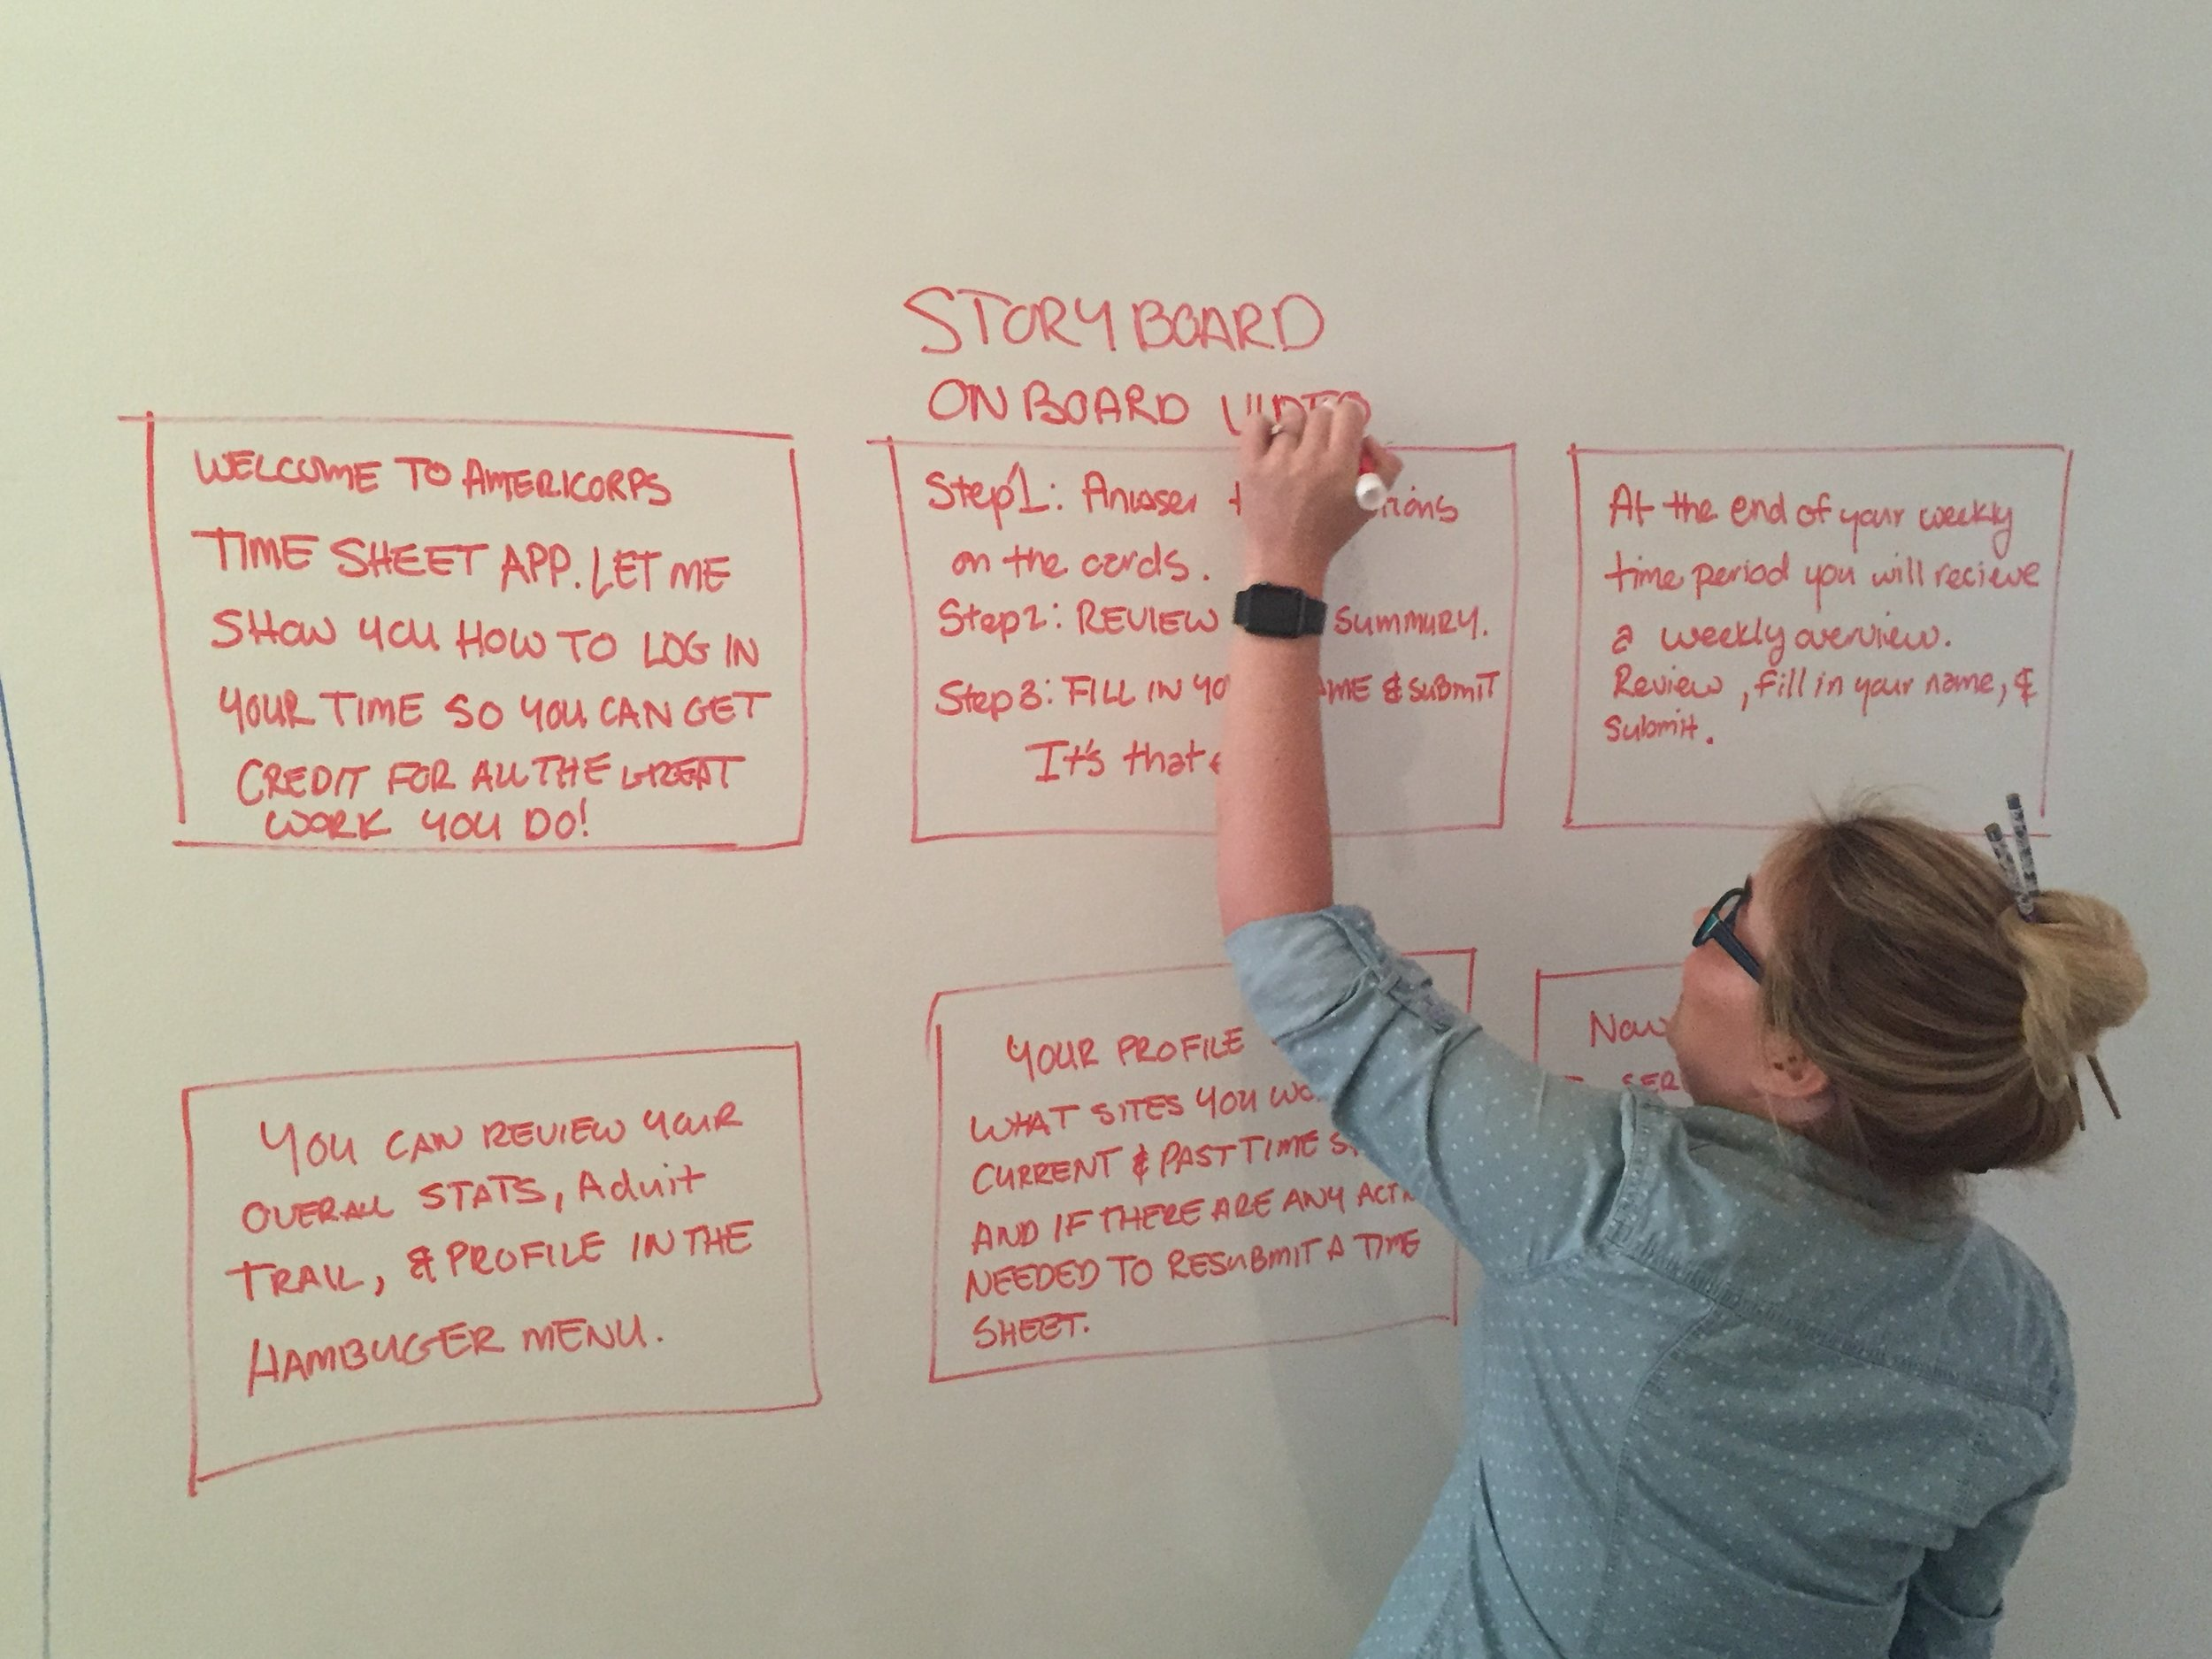 Creating a storyboard to show how to On Board the User.